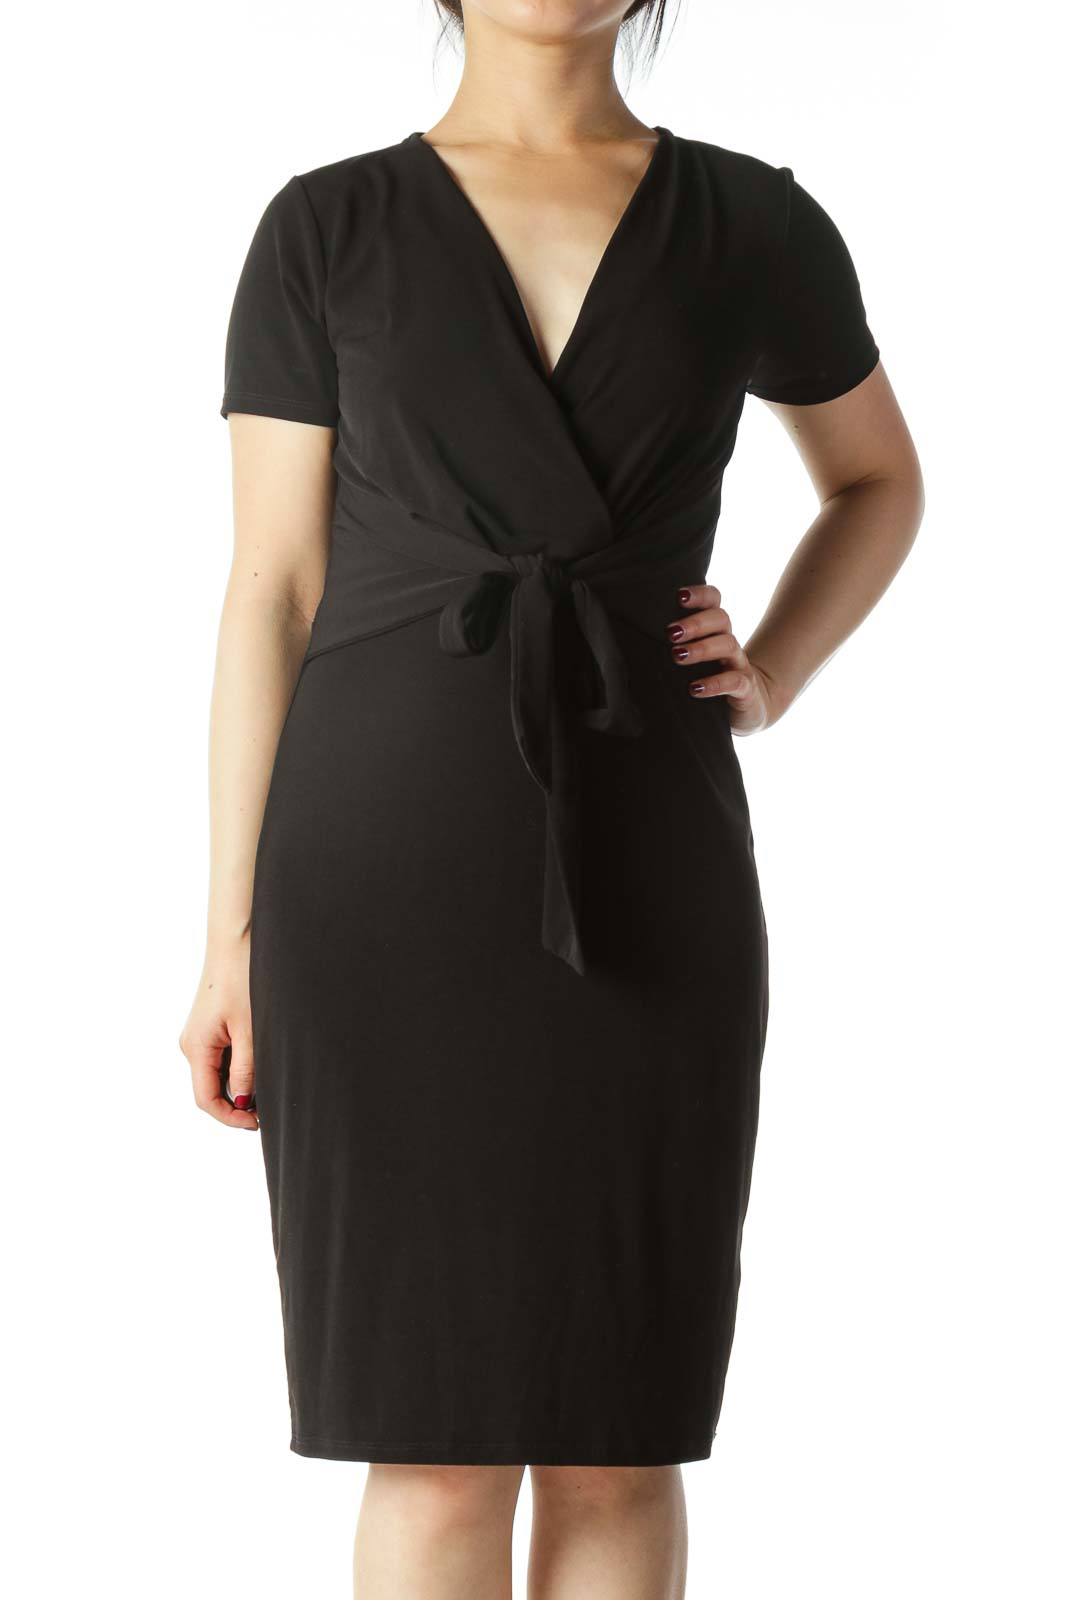 Black Wrap Evening Dress